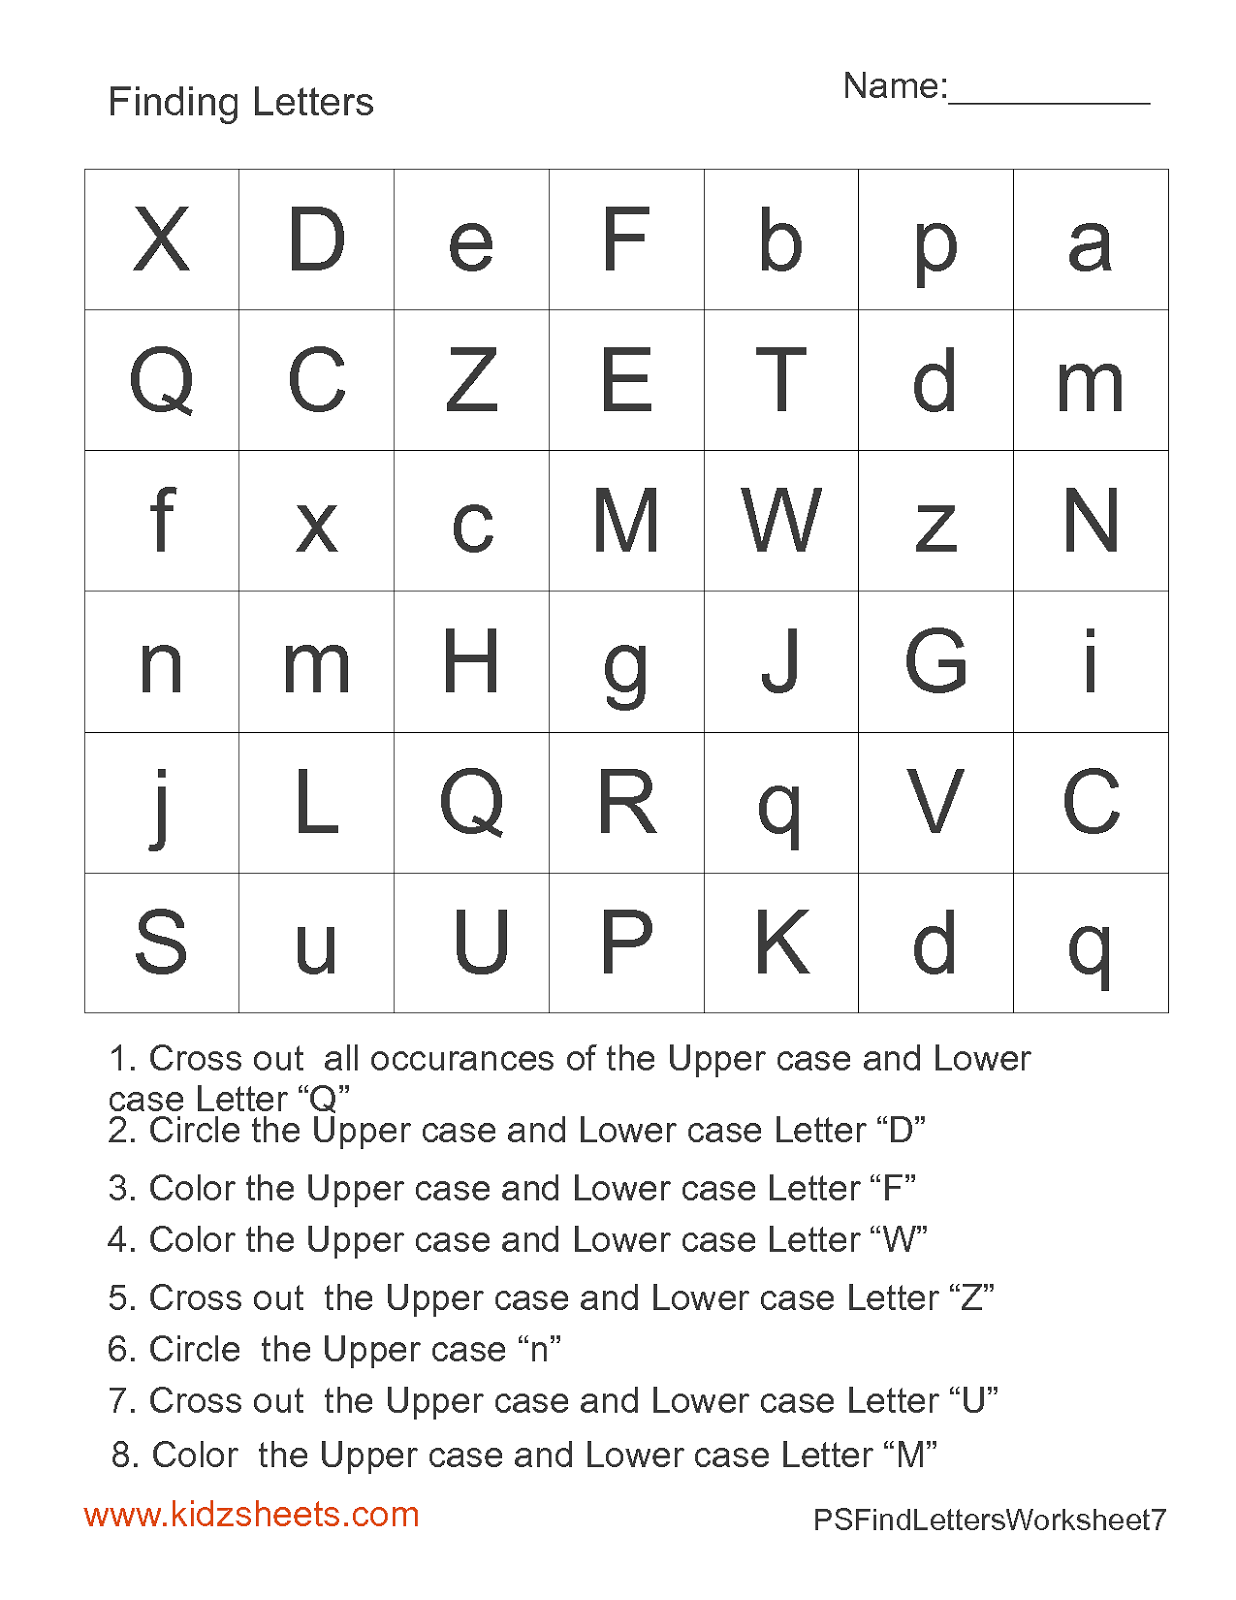 Kidz Worksheets Preschool Find Letters Worksheet7